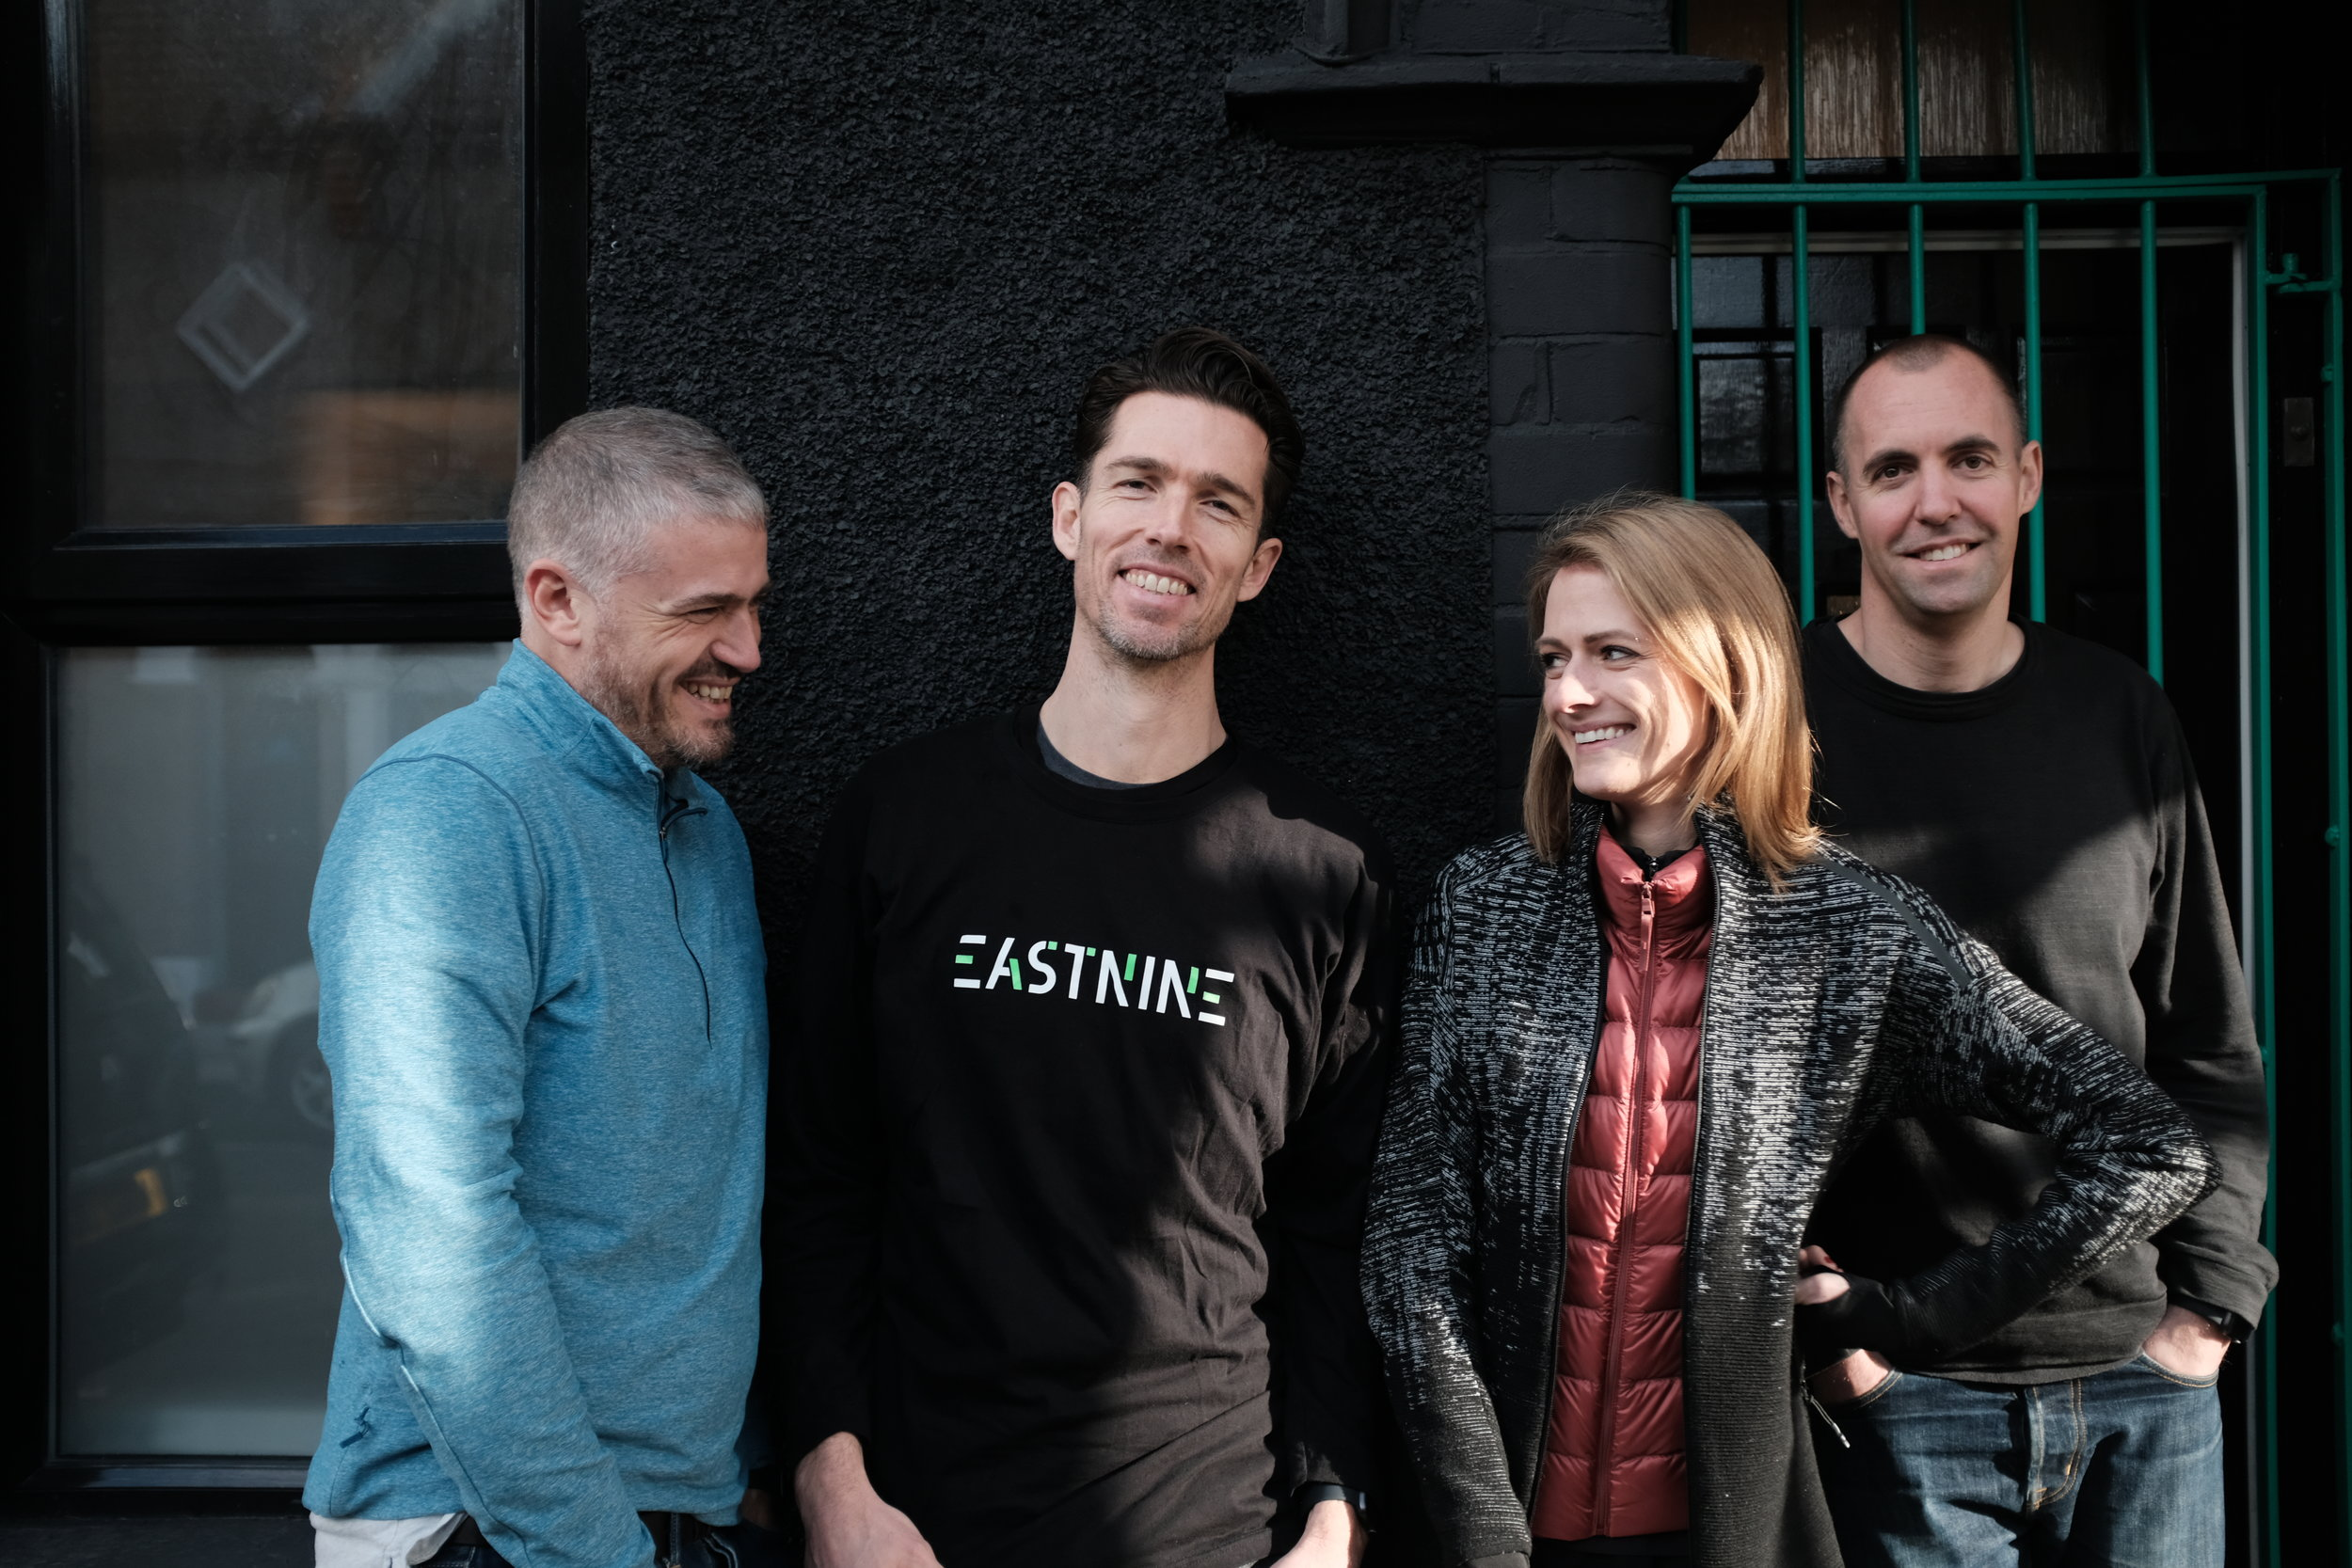 Eastnine co-founders, from left to right: Jason Goodman, David McCreary, Cat Forrest and Matt Harrison.